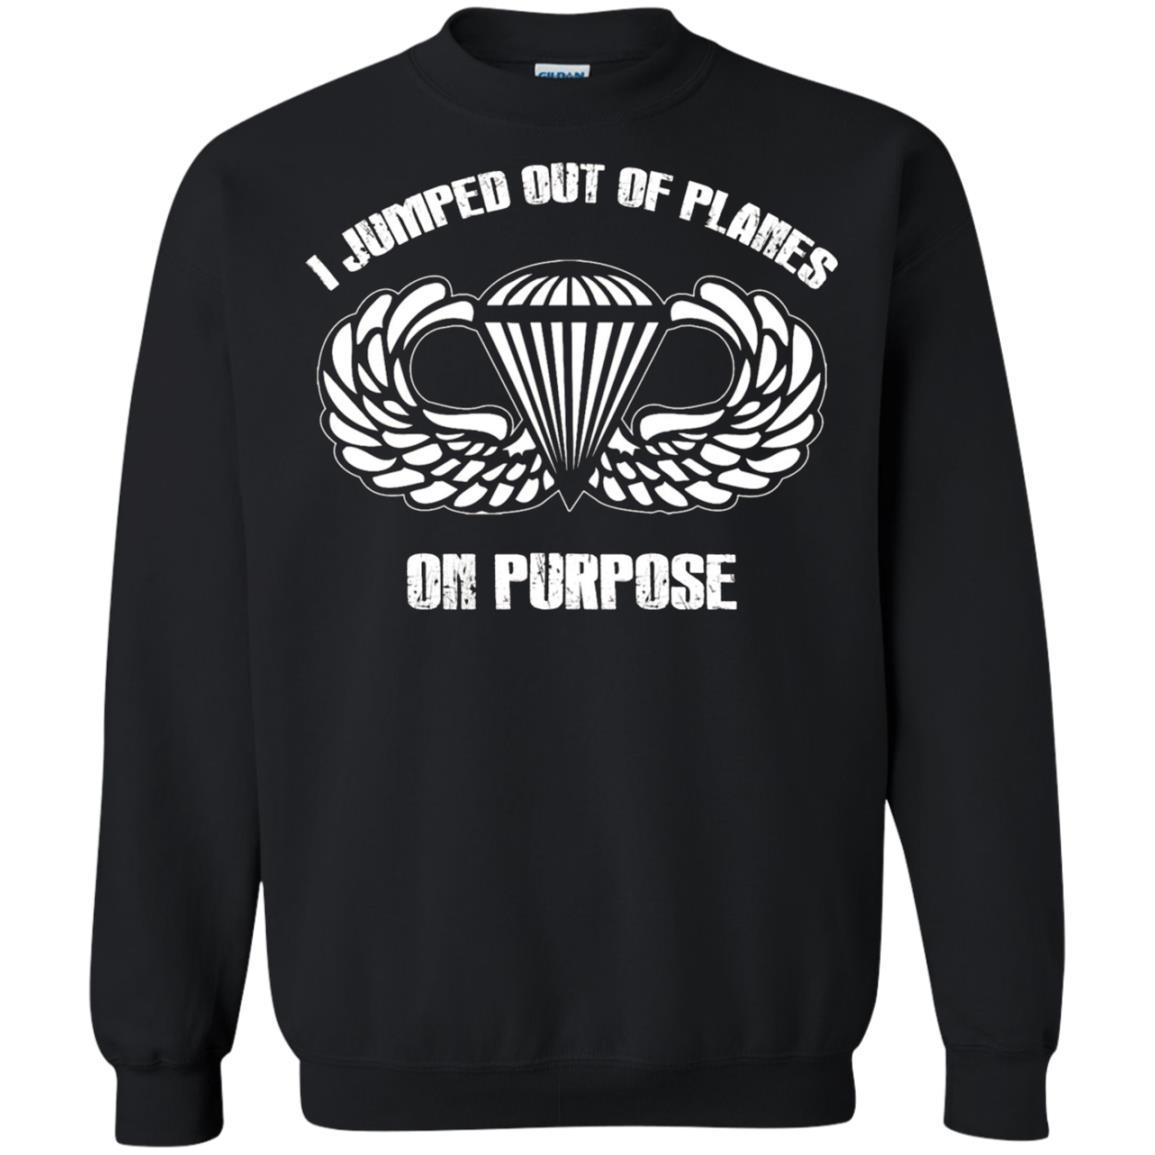 I jumped out of planes on purpose, Airborne - Crewneck Pullover Sweatshirt Black / 5XL